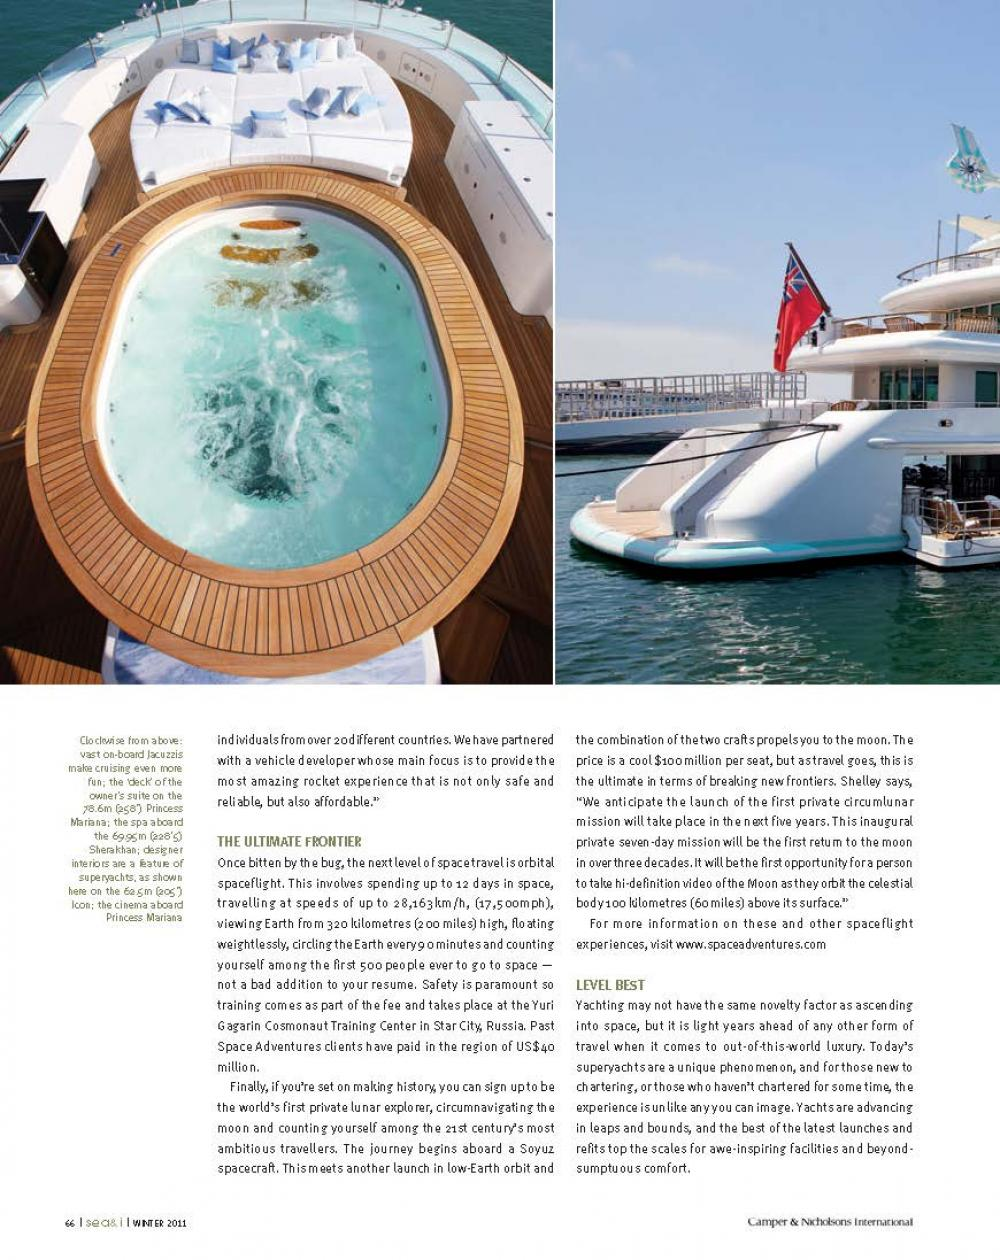 ISSUE 20 - SEA+I - Page 68 | C&N